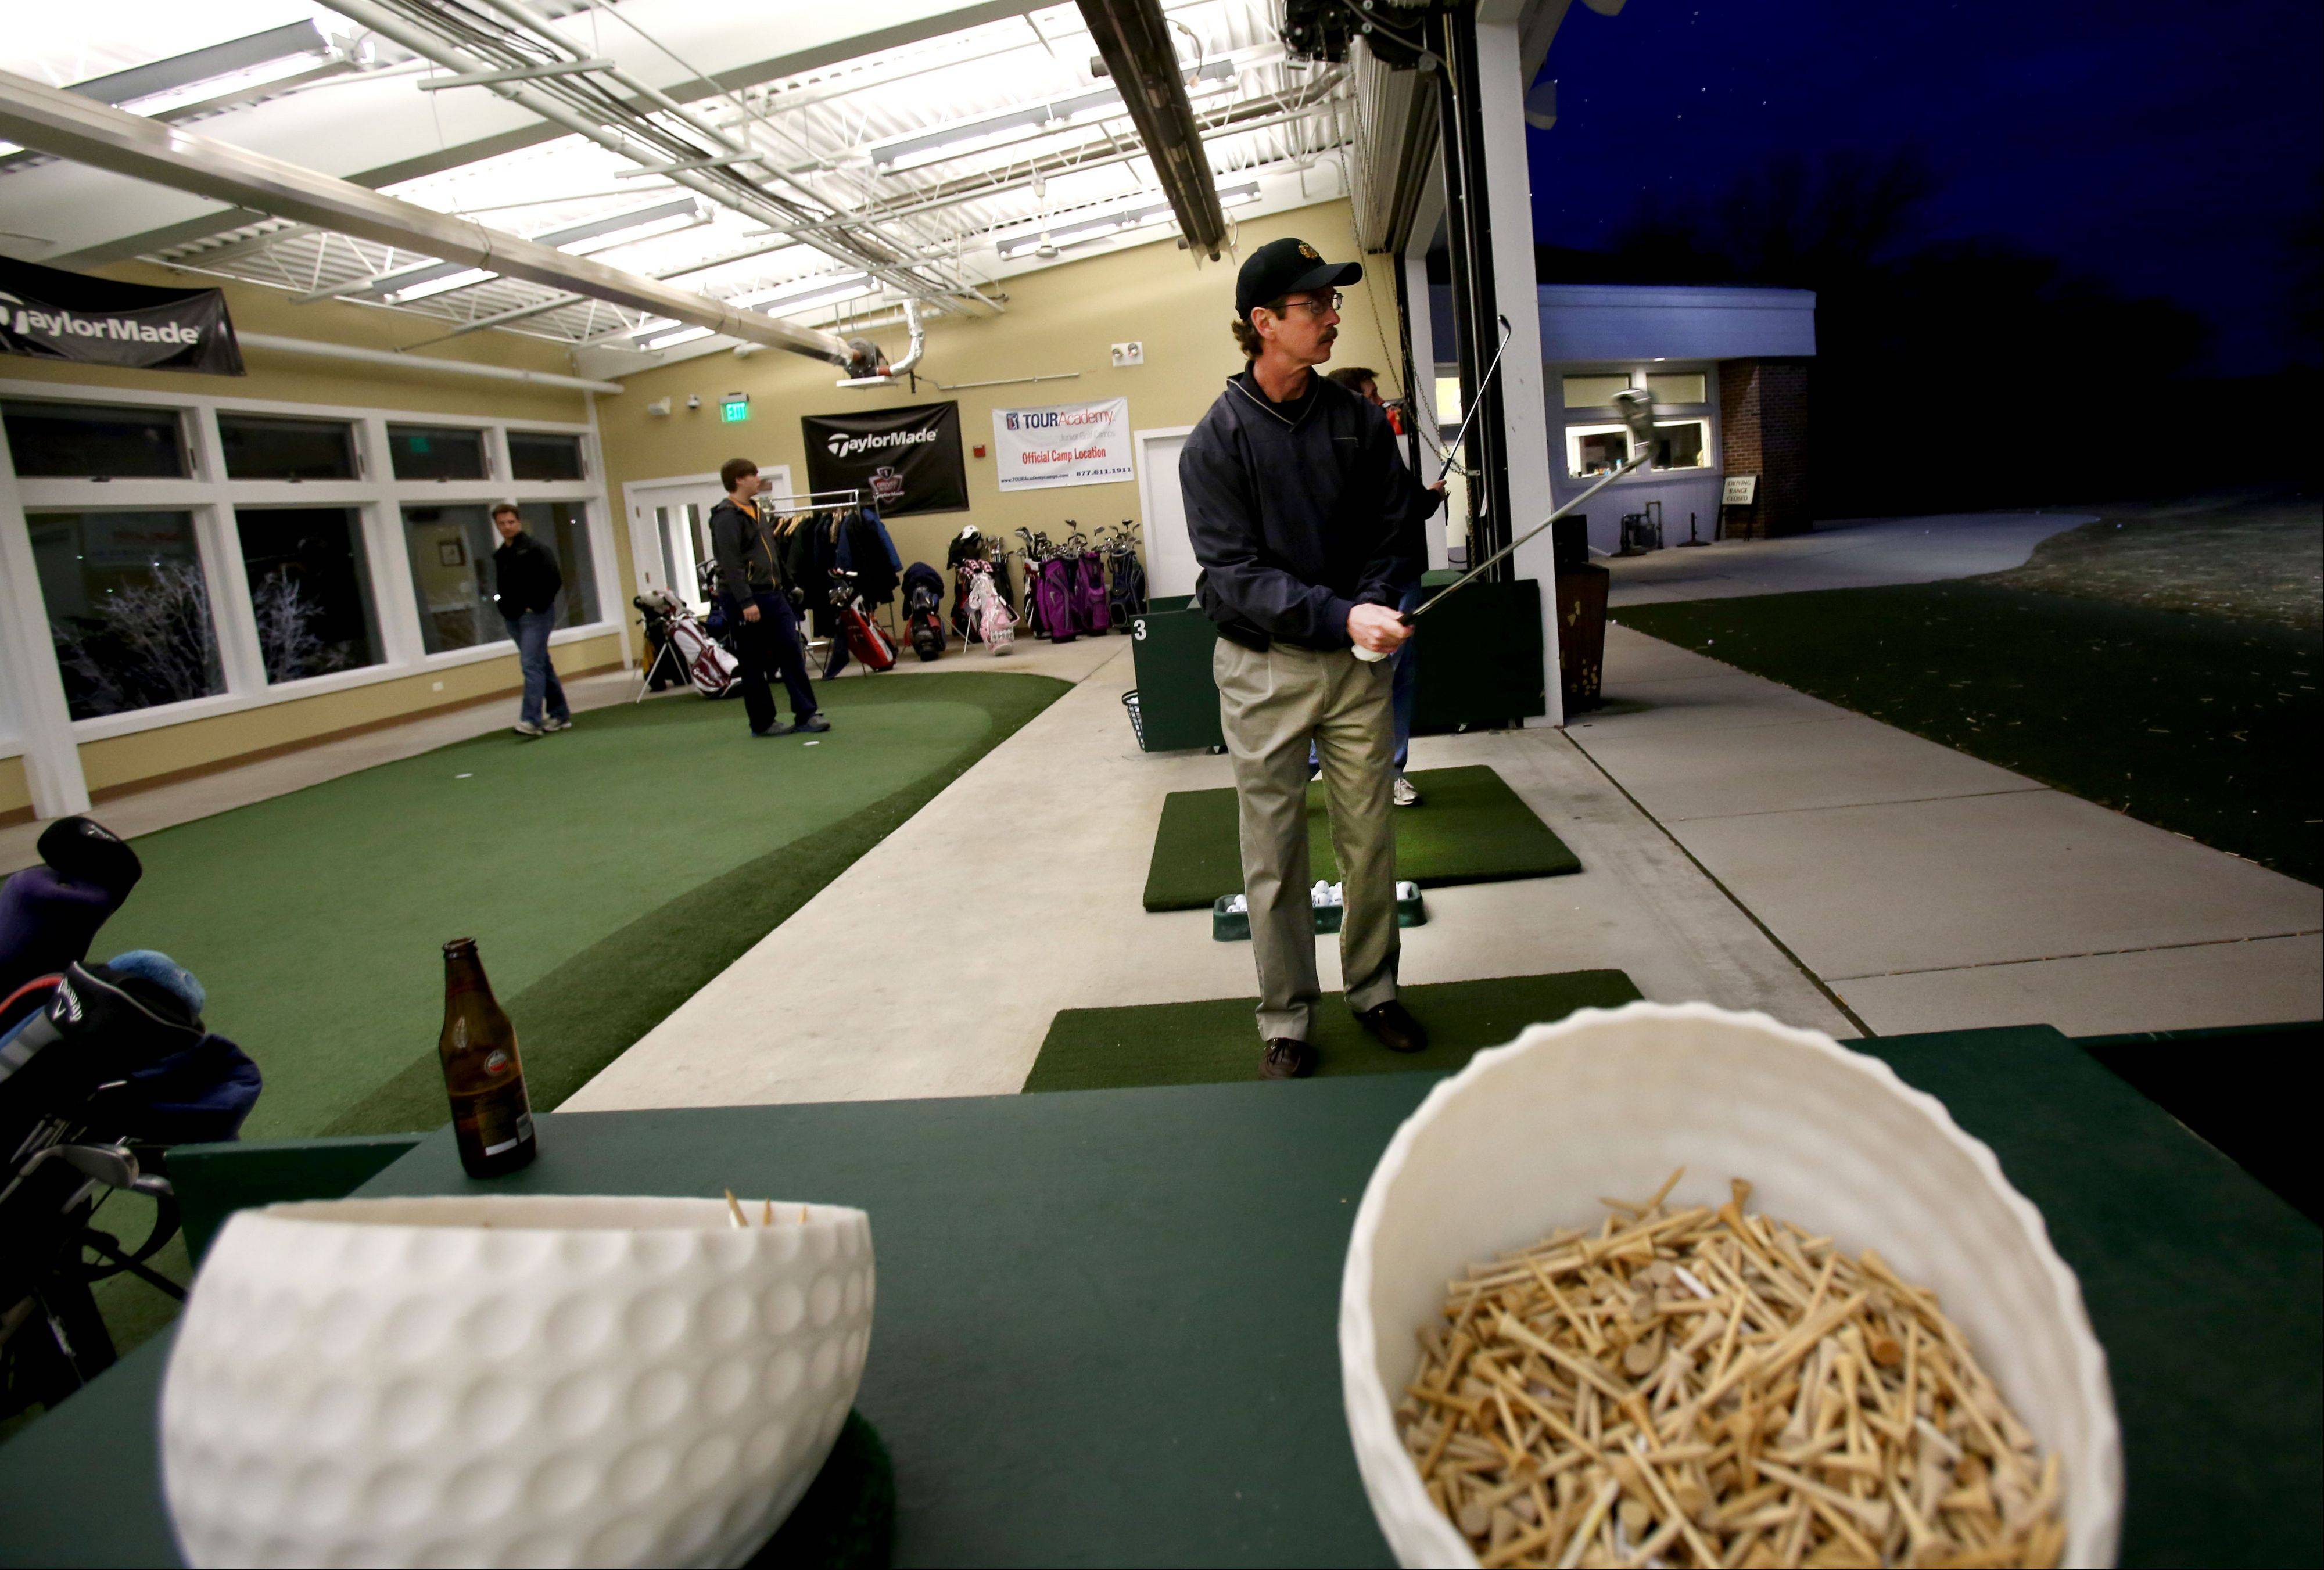 John Ryan of Hannover Park uses the driving range during the Daily Herald Subscriber Total Access event Monday at the Cantigny Golf Academy at Cantigny Park in Wheaton.